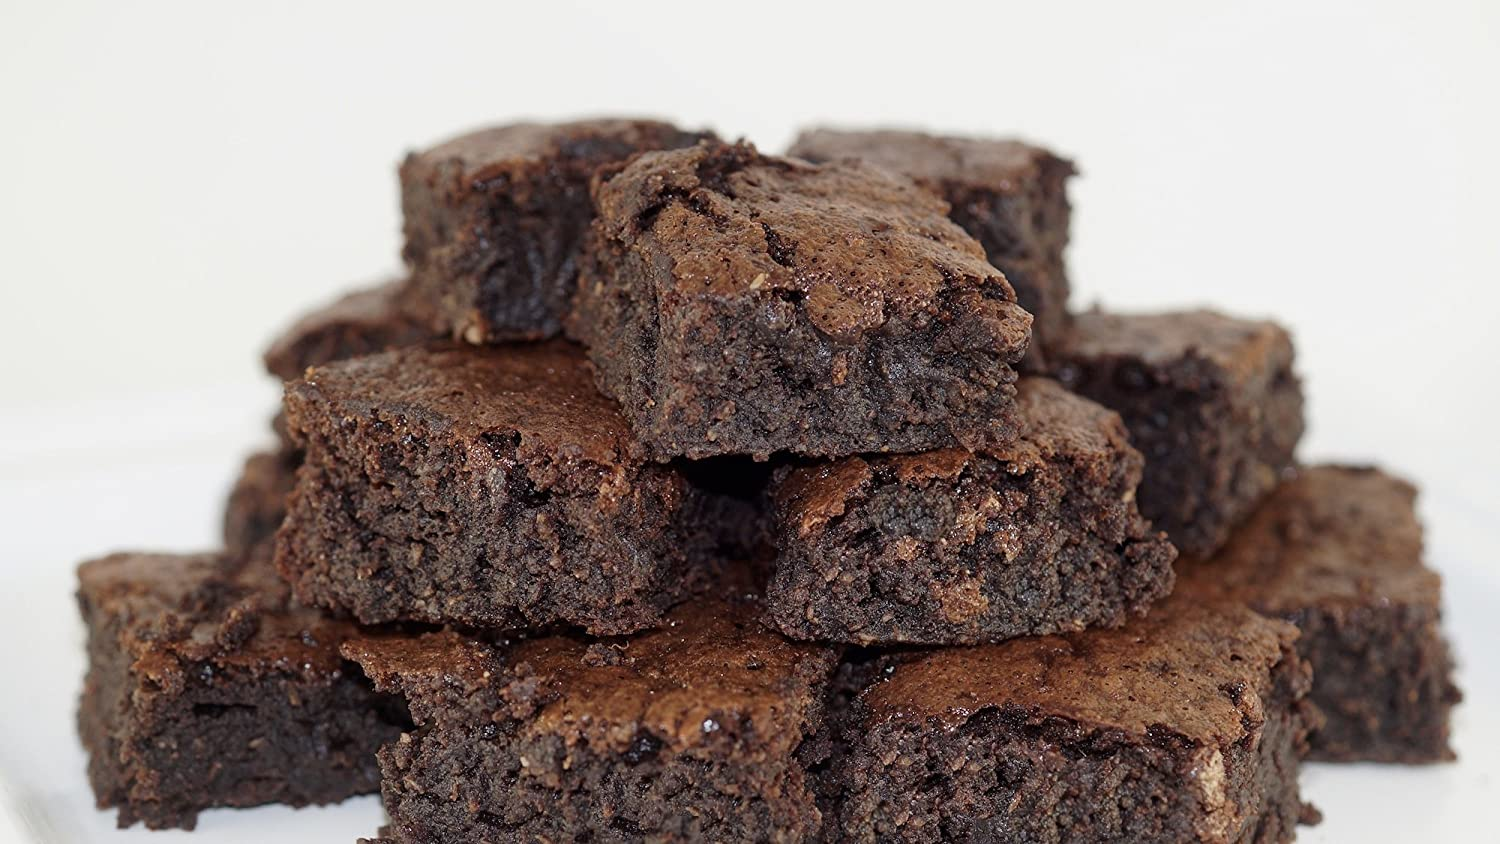 Amazon.com : Diabetic Kitchen Gourmet Chocolate Brownie Mix Makes ...